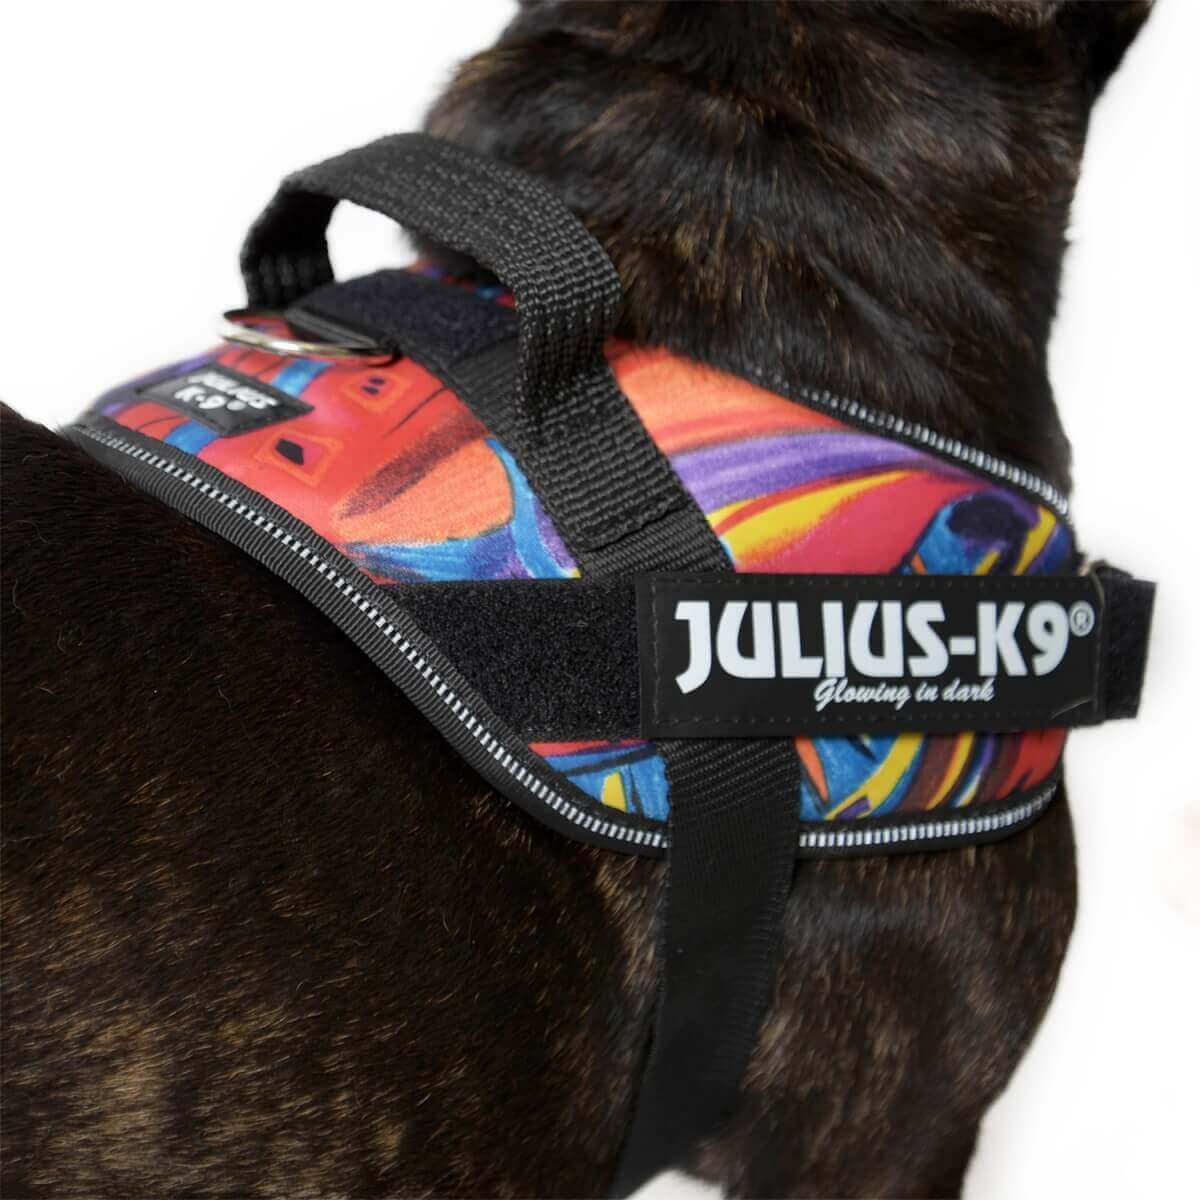 Harnais Julius K9 IDC EDITION SPECIALE Violet Psycho Canis_2